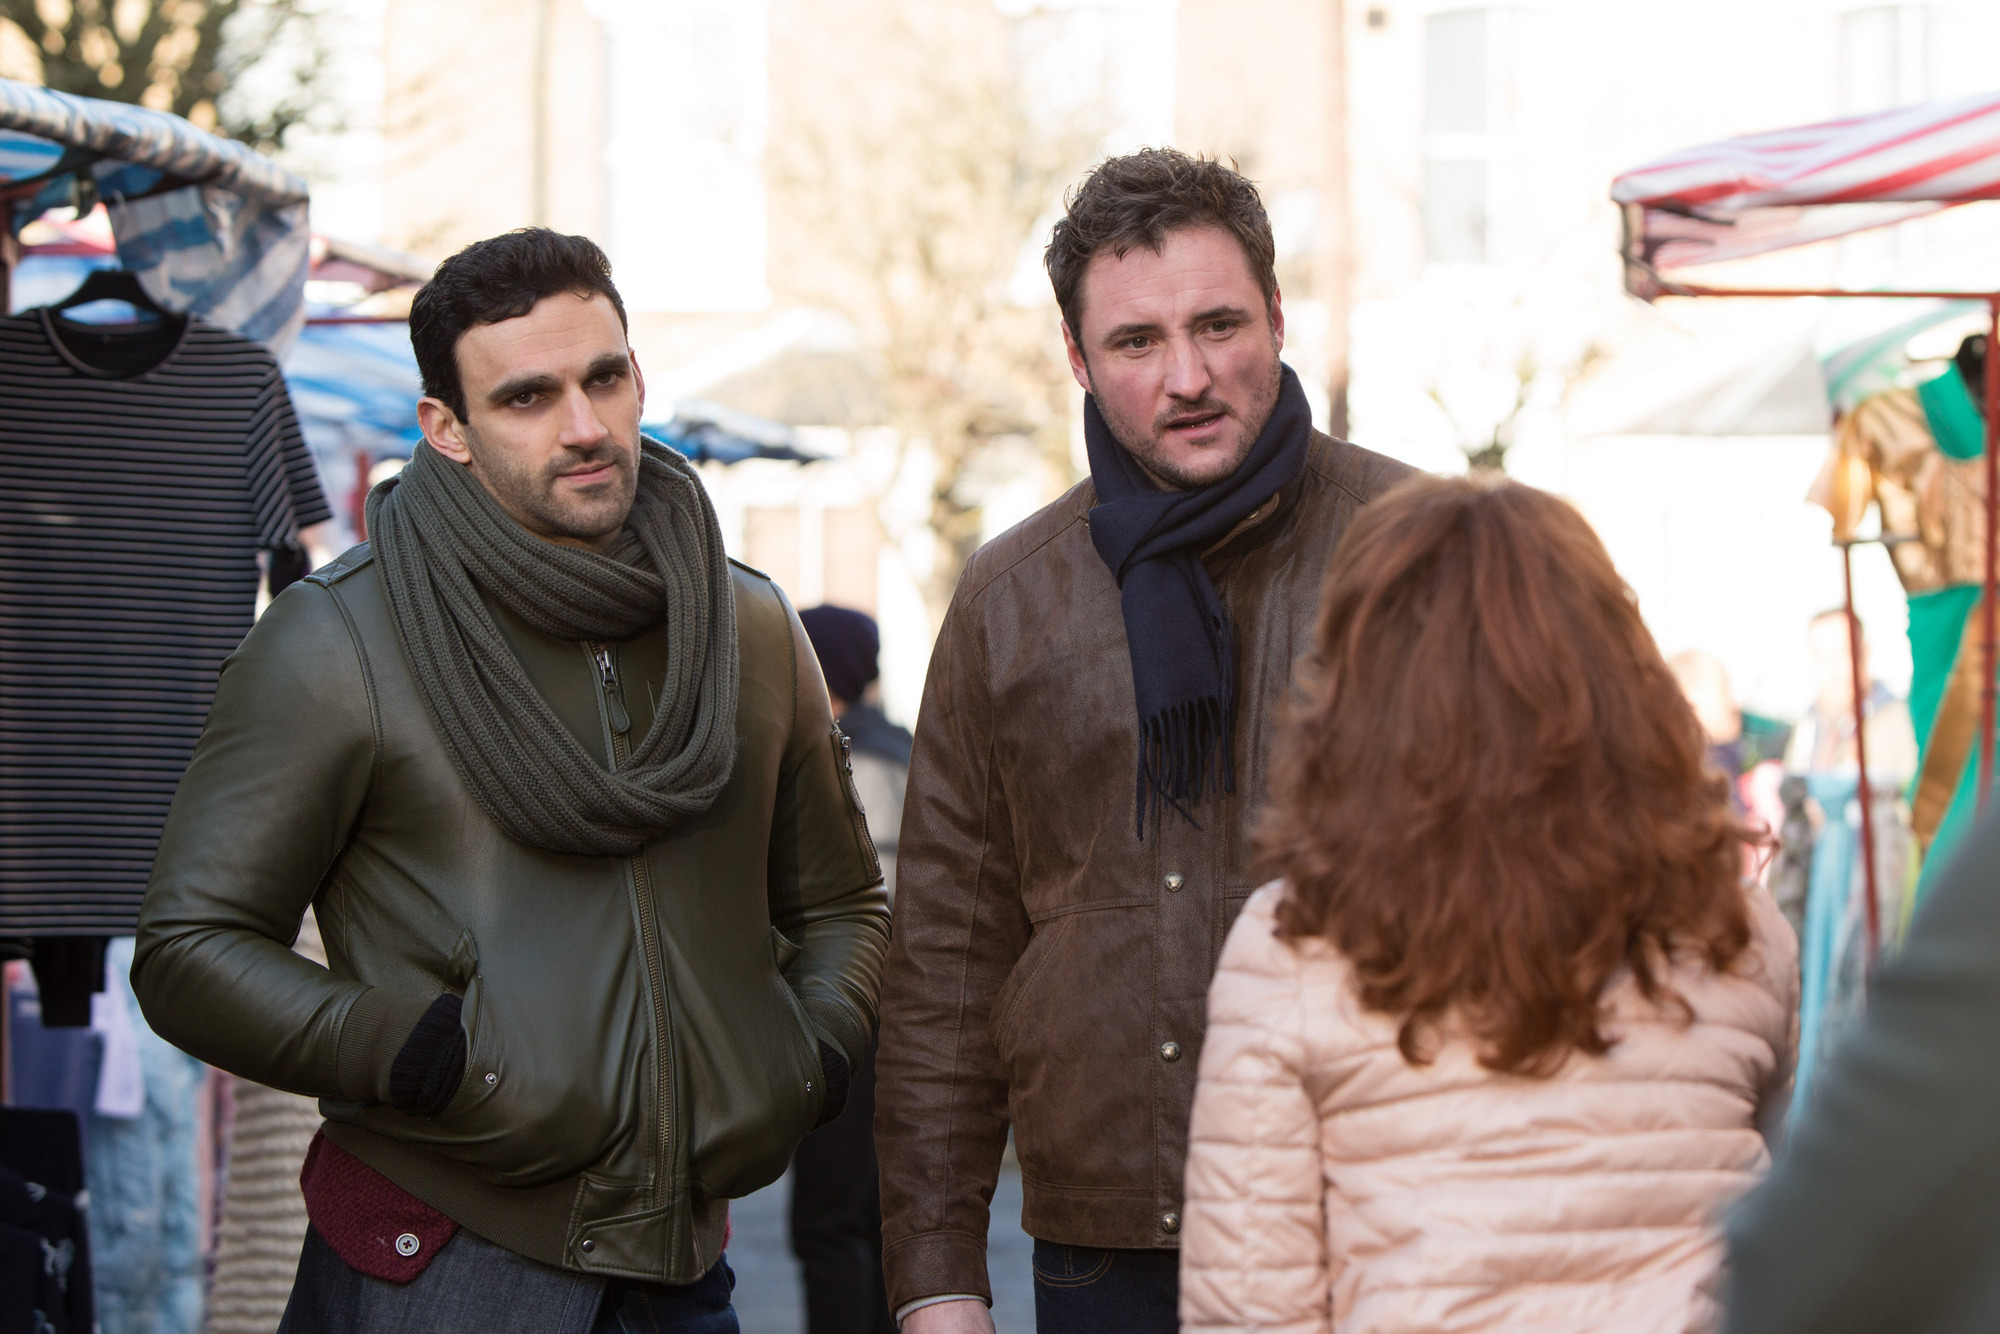 EastEnders spoilers: New clash in store for Martin Fowler and Kush Kazemi